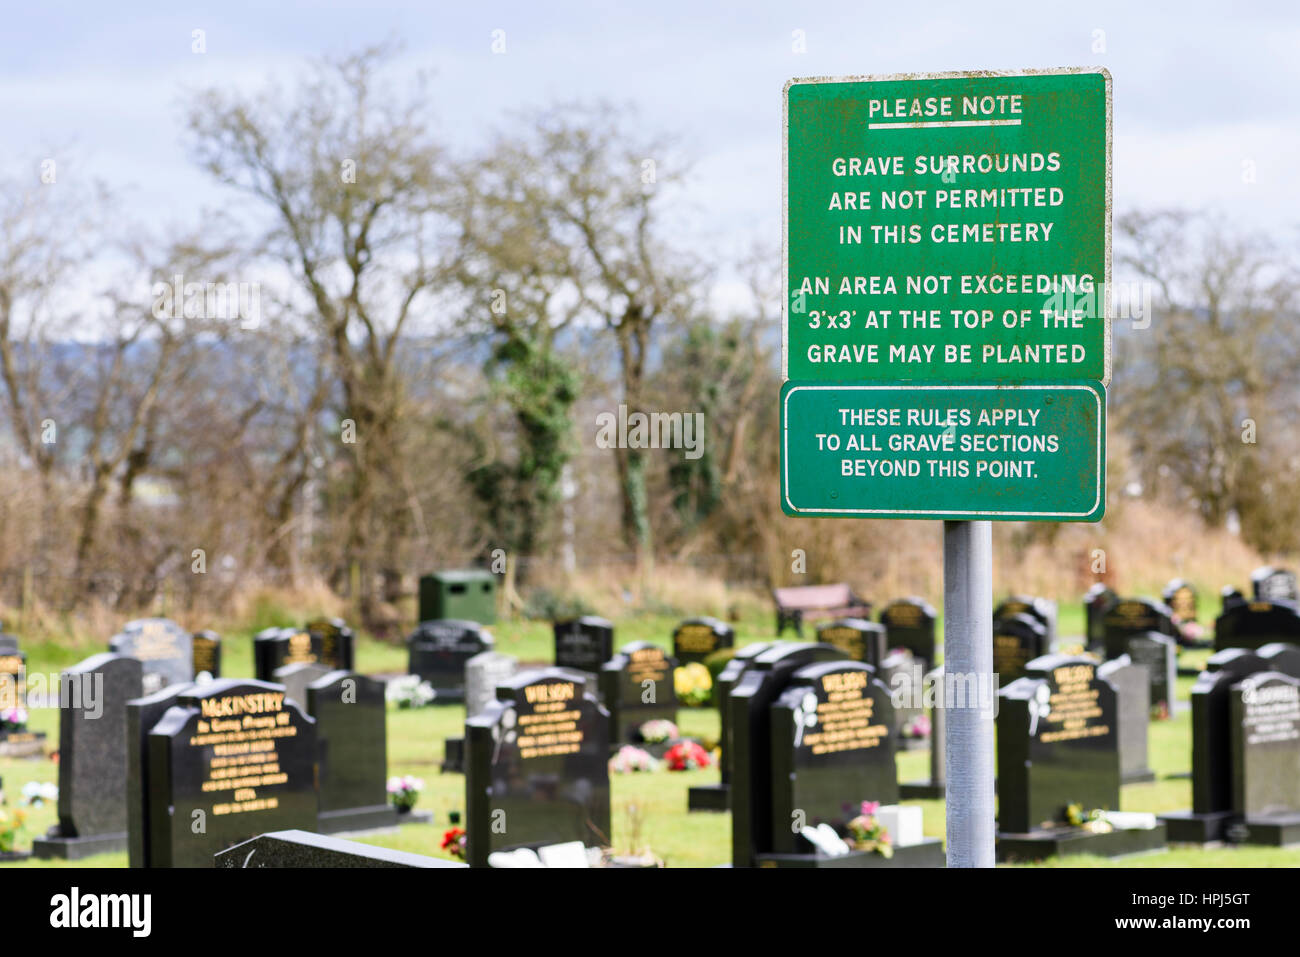 Sign in a lawn cemetery reminding people that grave surrounds are not permitted. Stock Photo